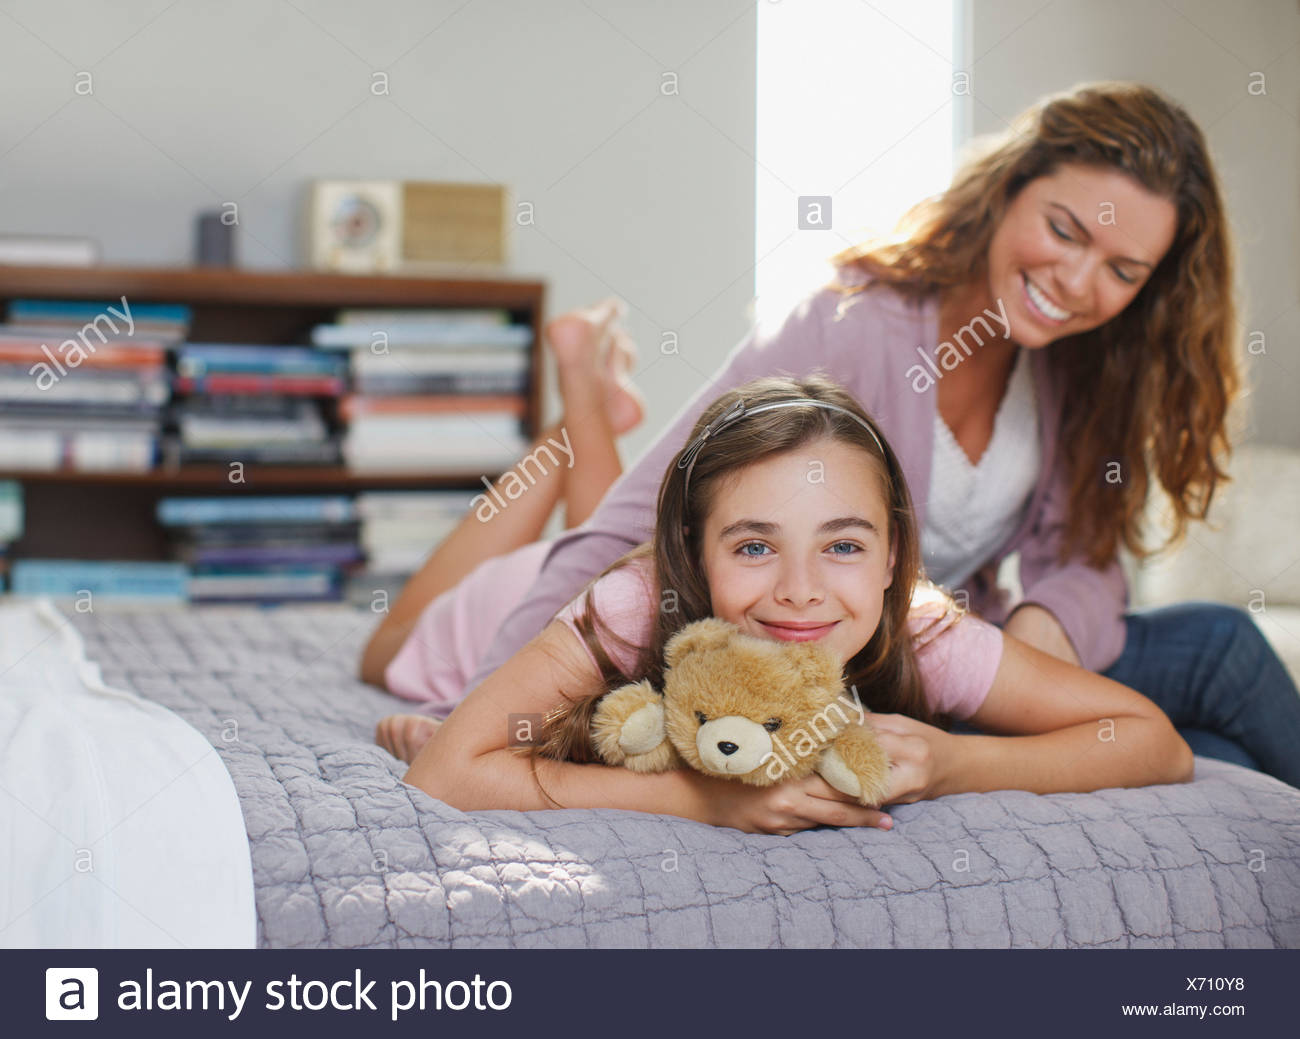 Mother and daughter relaxing on bed - Stock Image